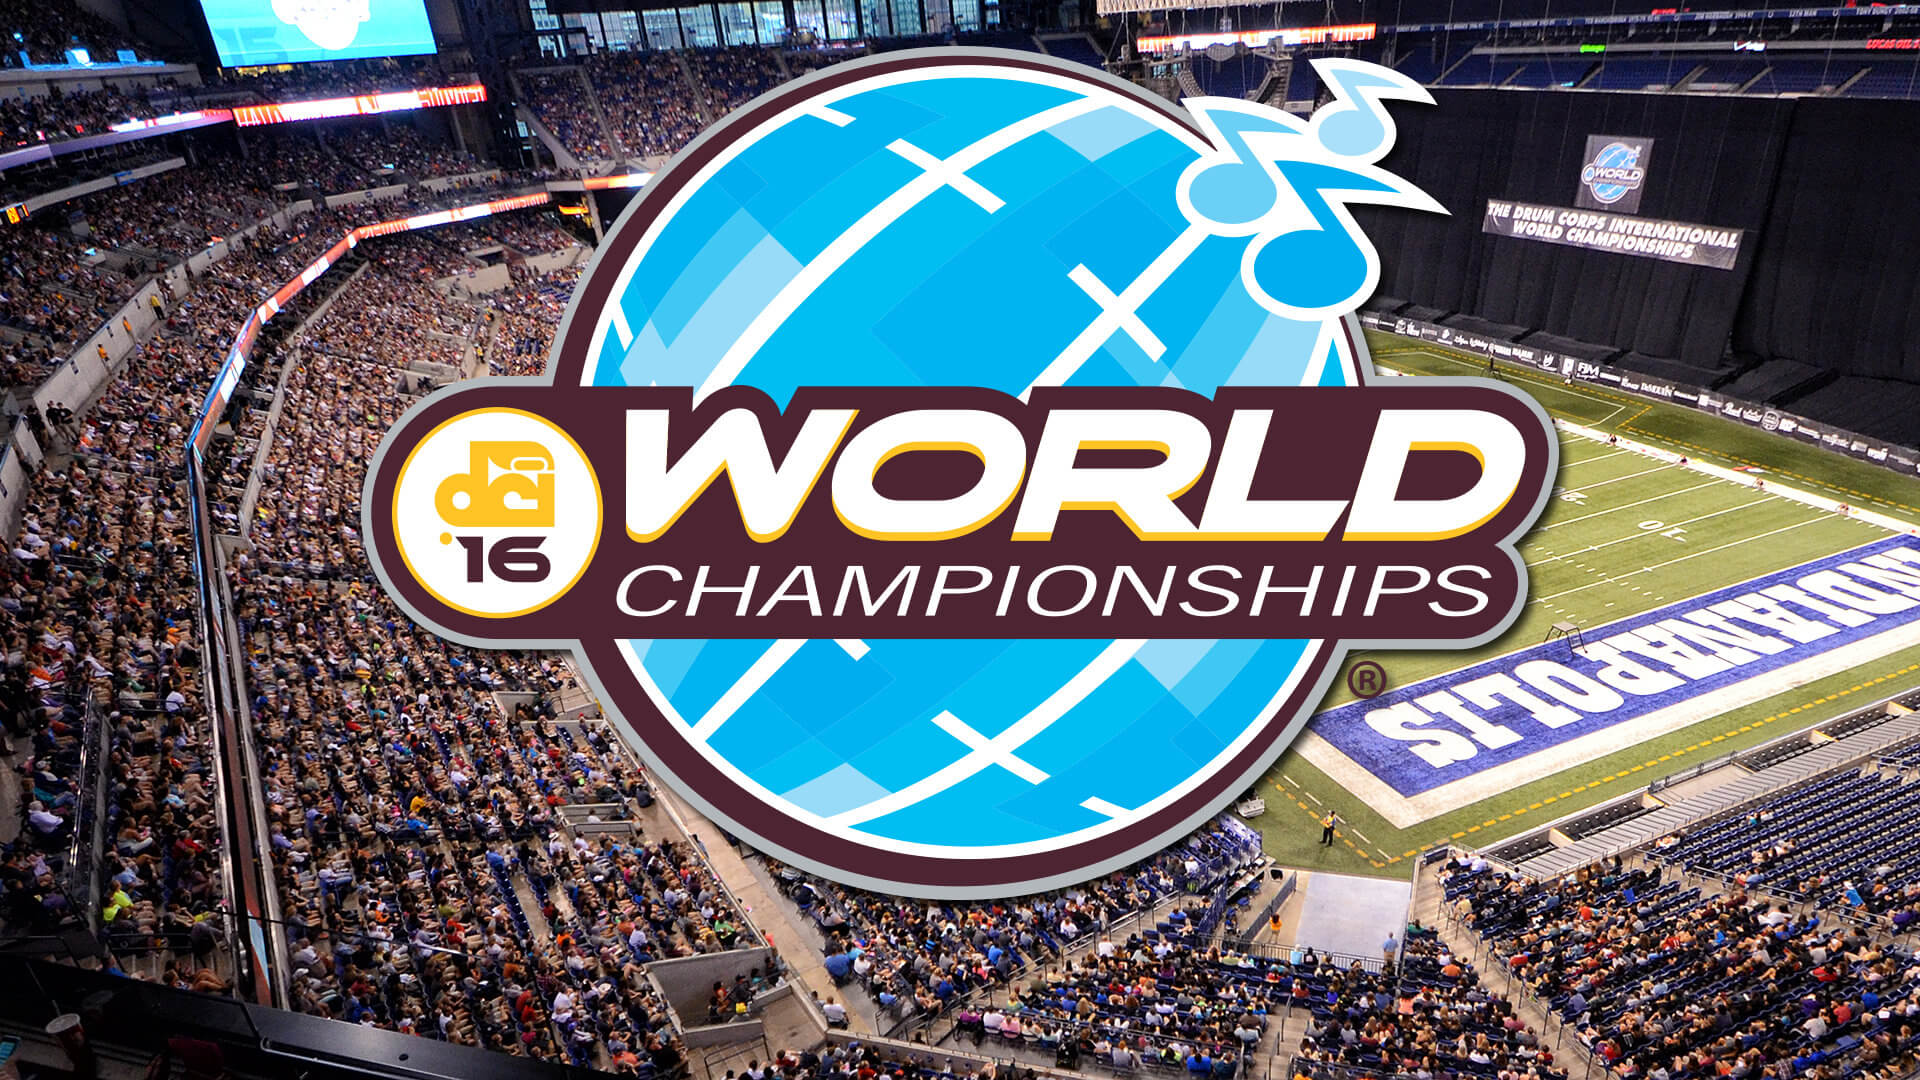 Day-by-day guide to the 2016 DCI World Championships